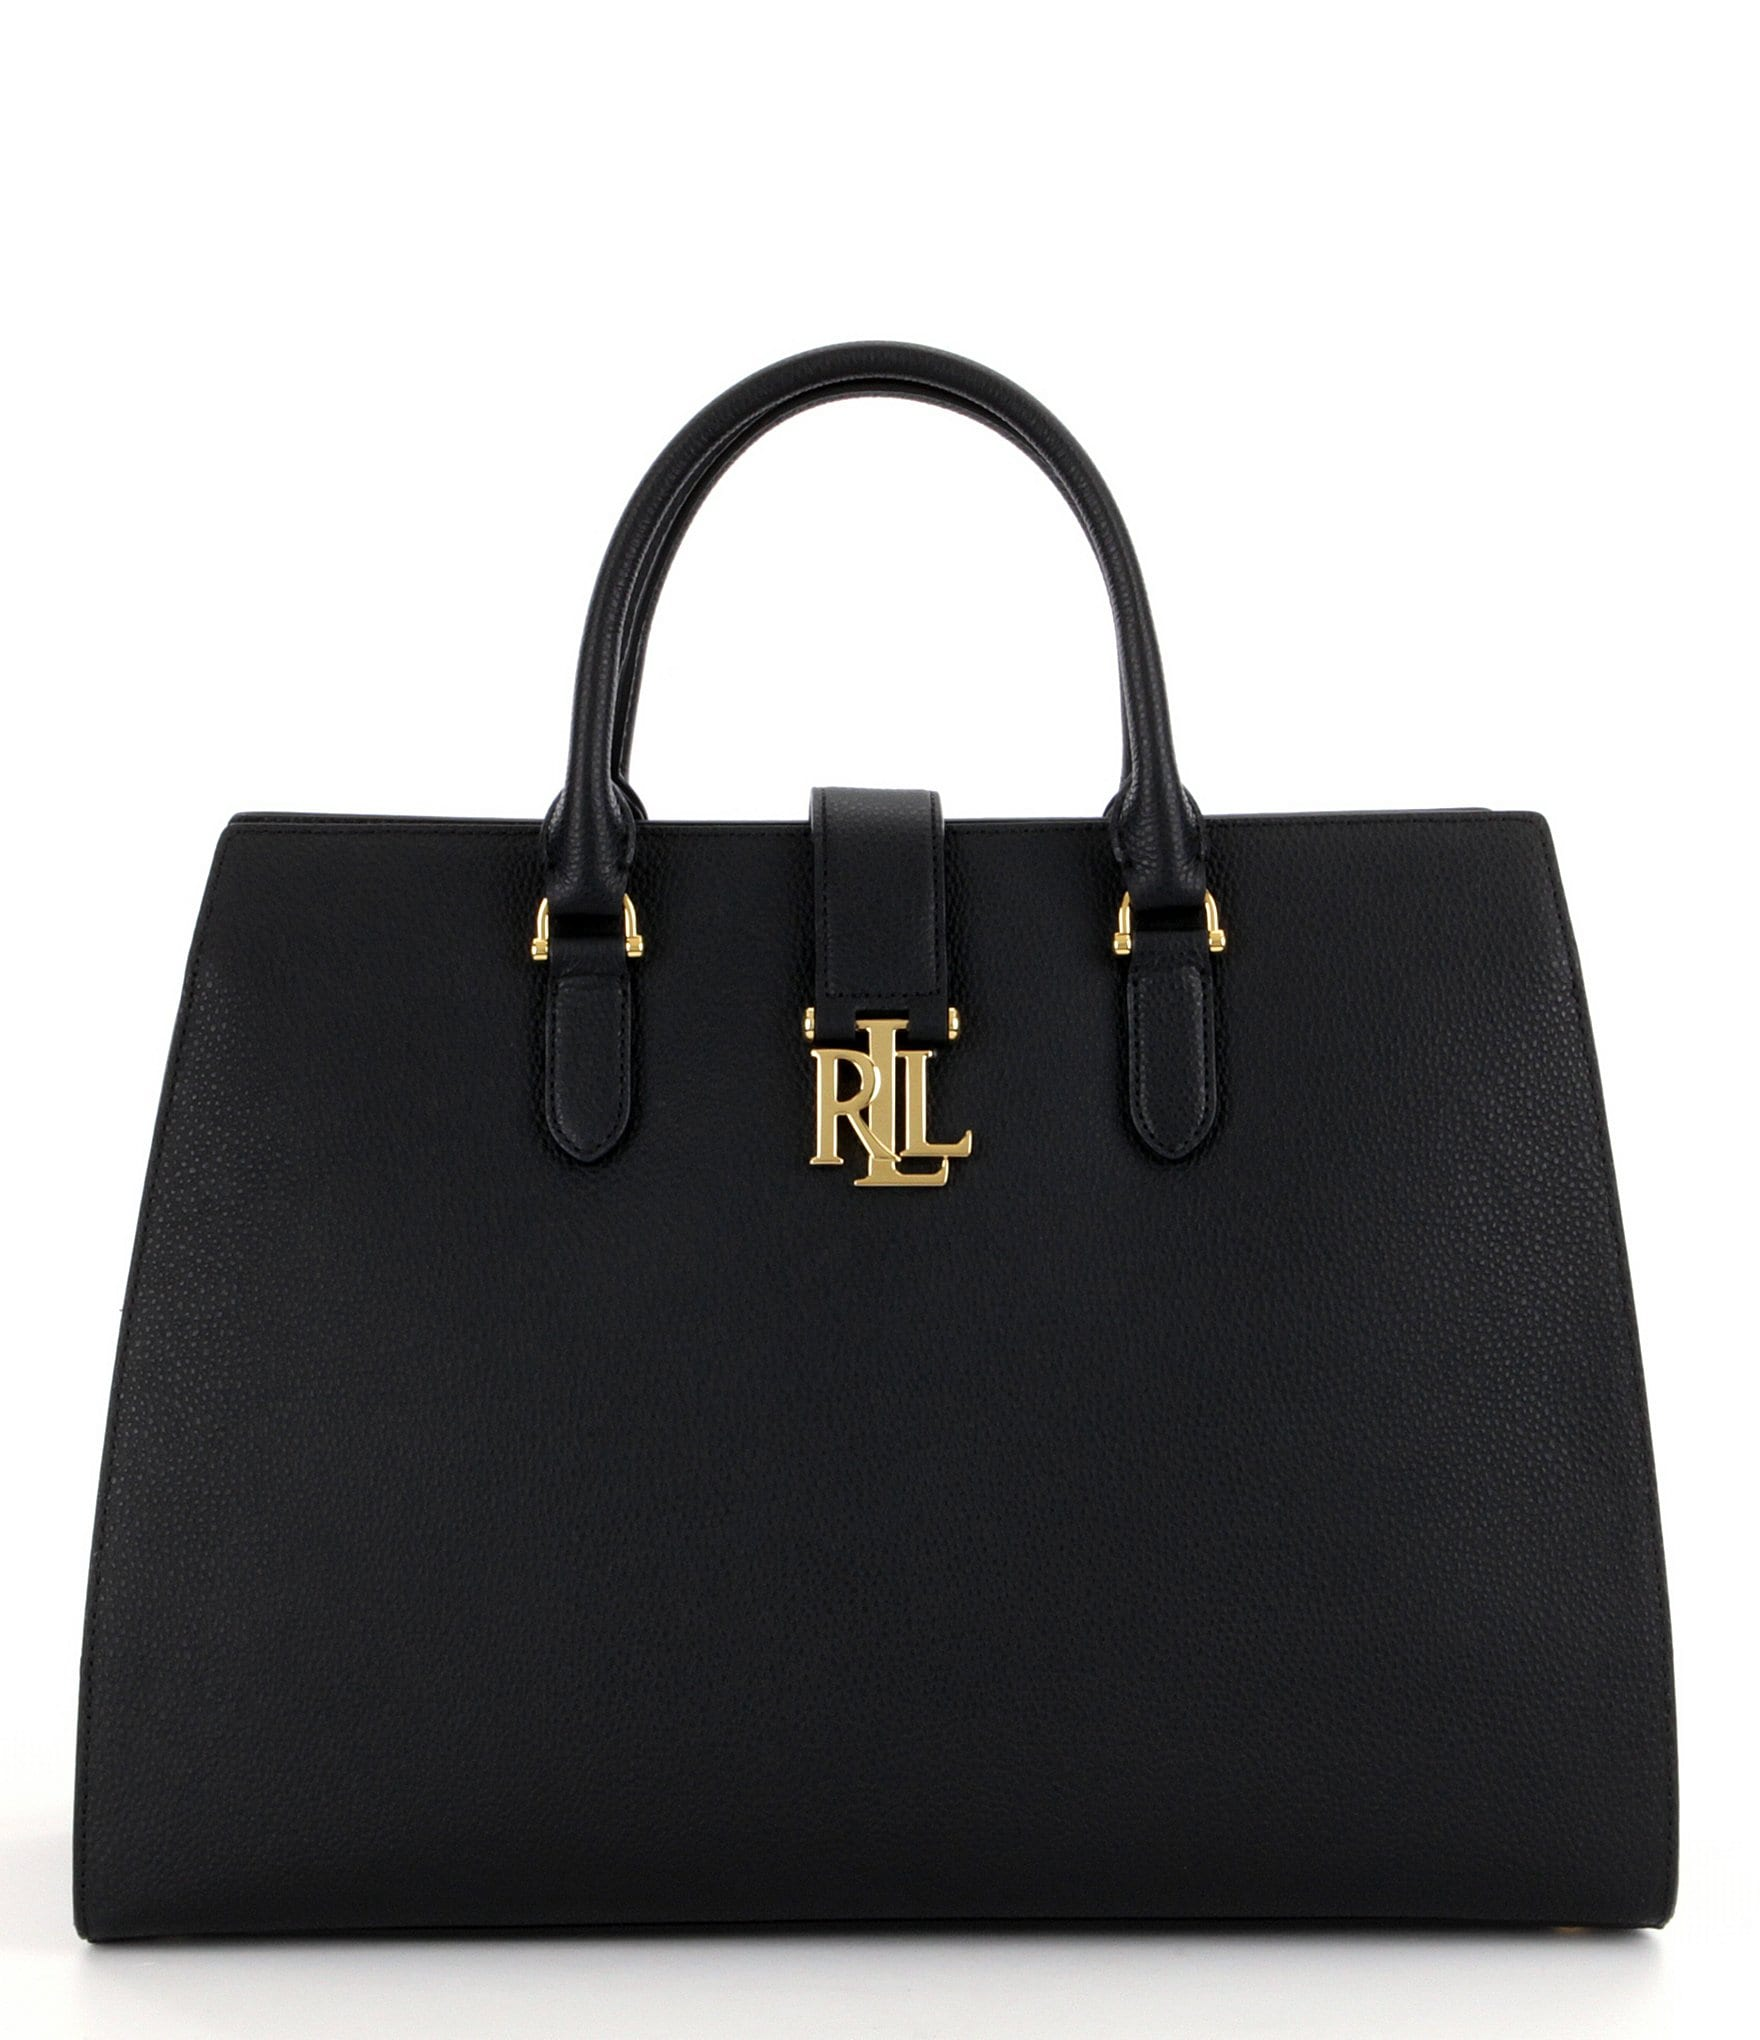 Ralph Lauren Tote Laukku : Lauren ralph carrington collection brigitte tote